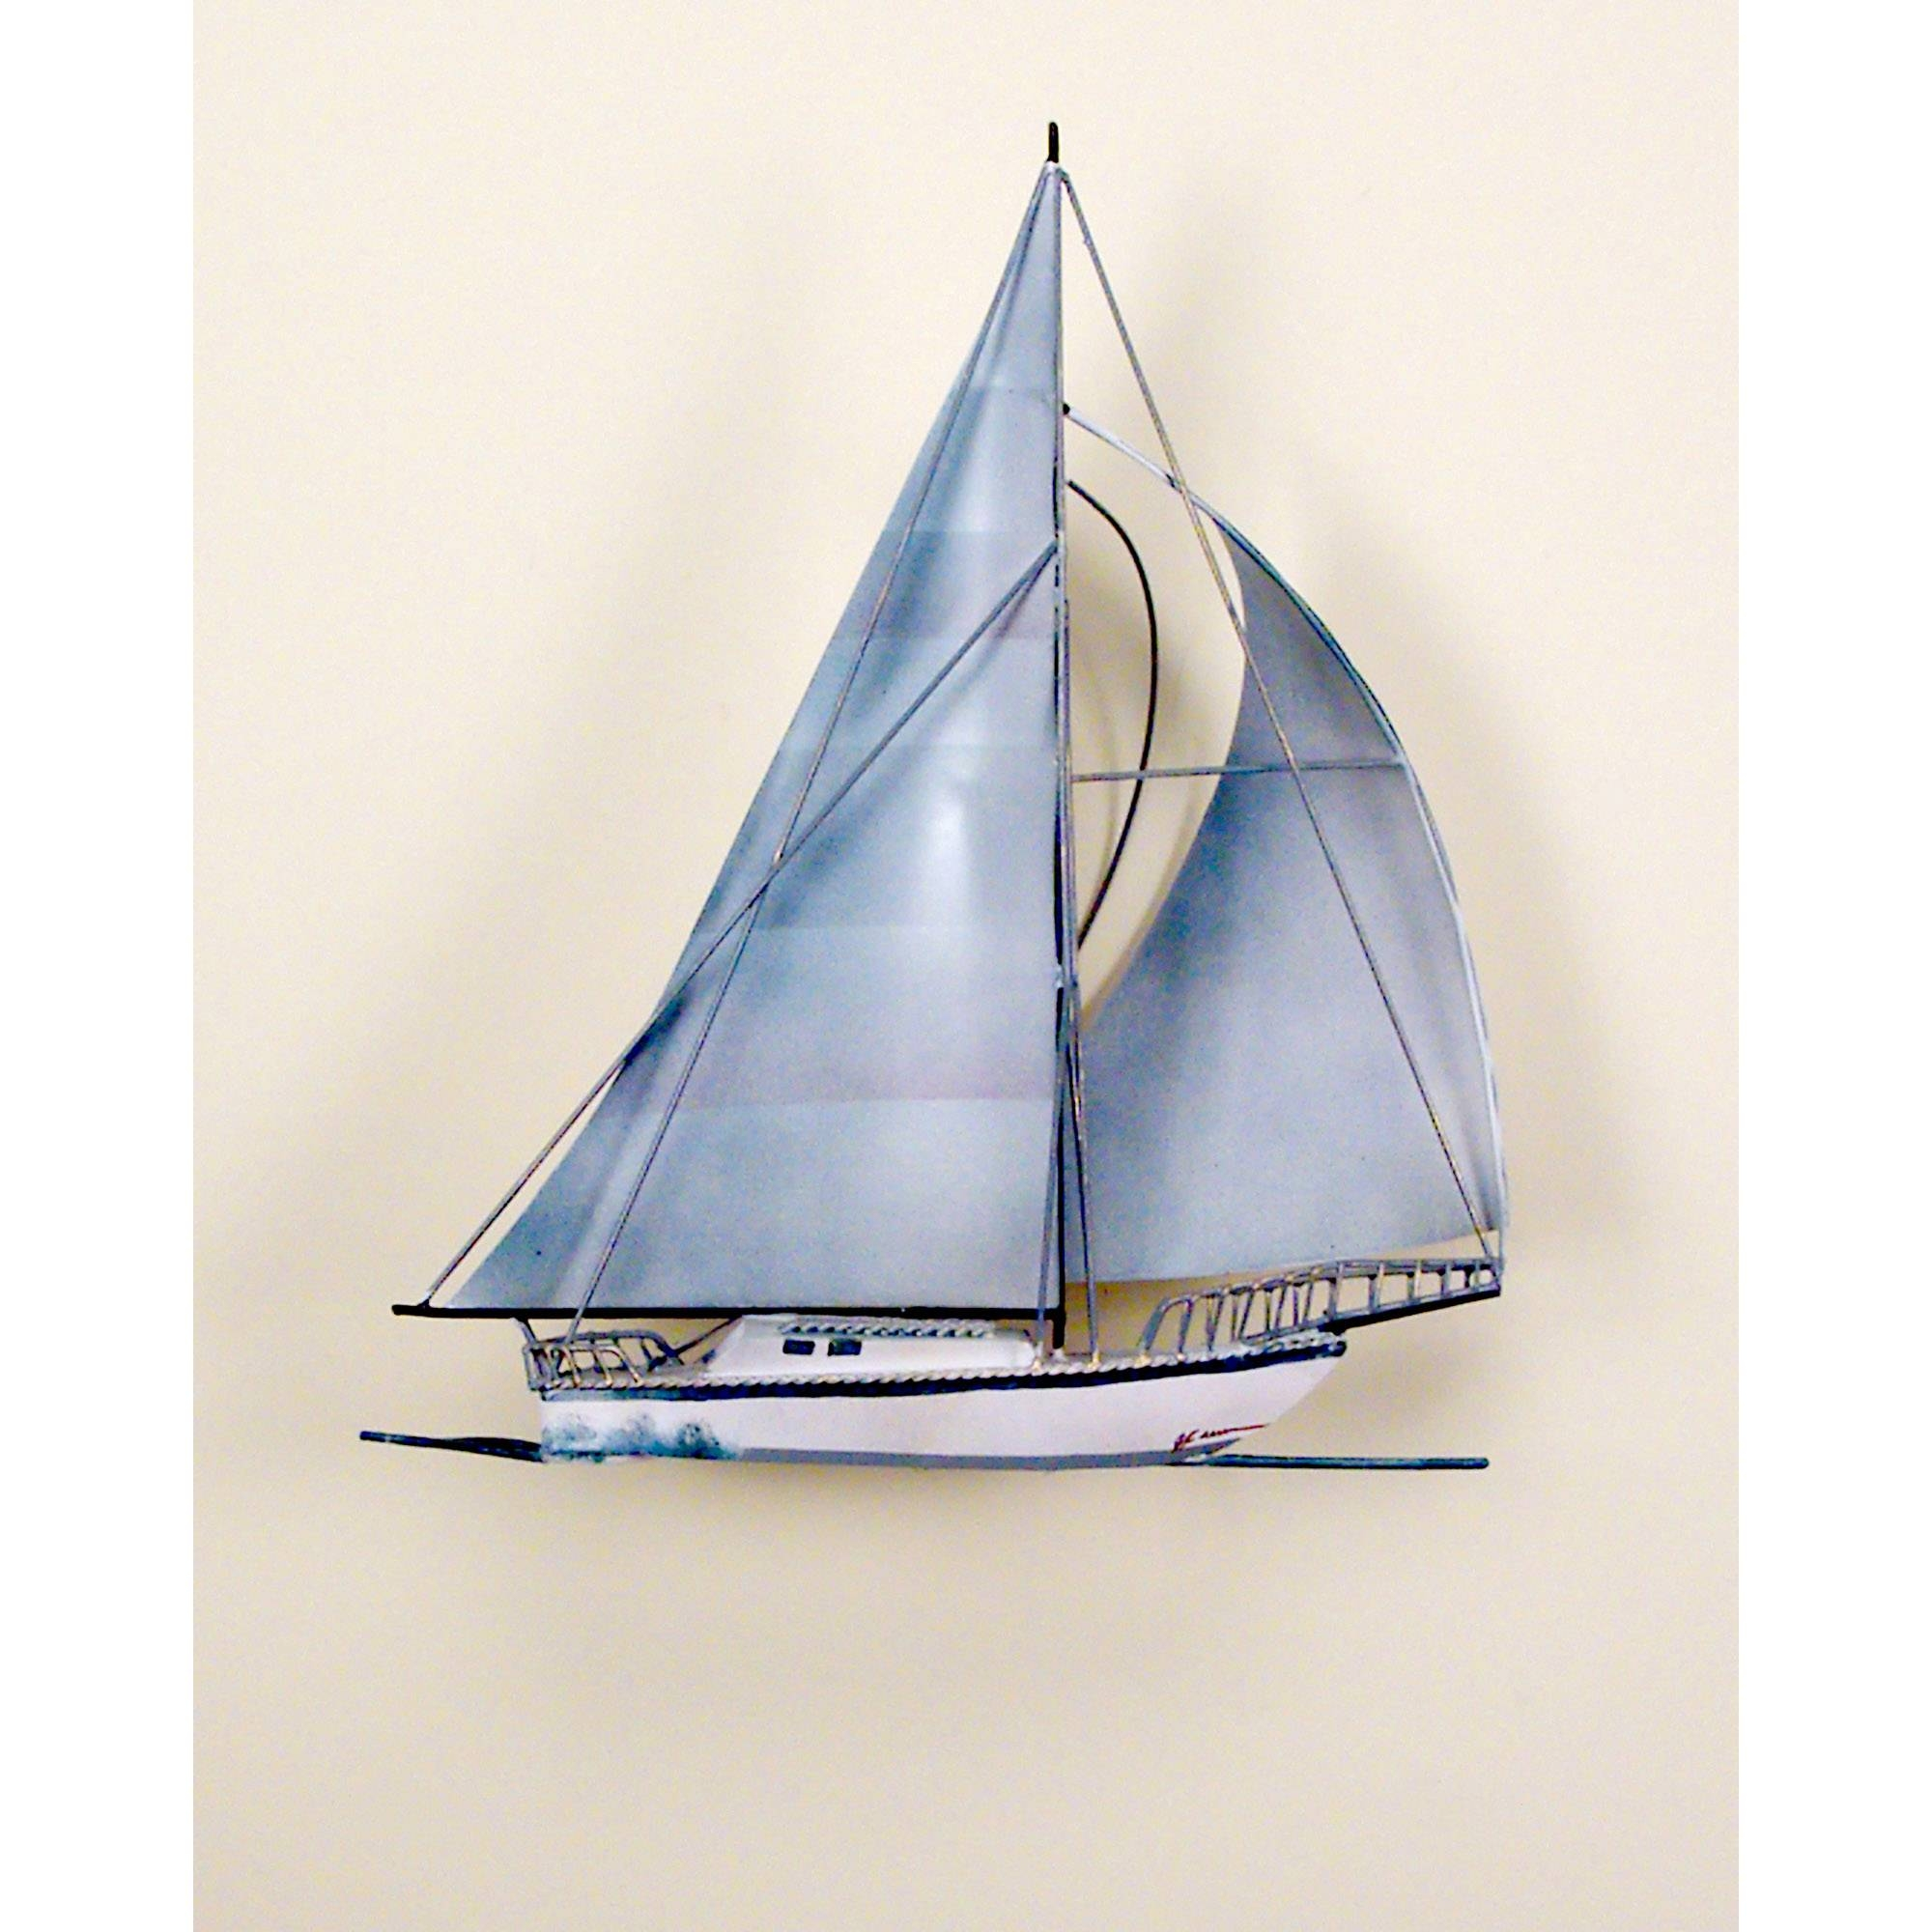 Windjamer Sailboat, Single, Ocean, Boat, Nautical, Sailing Intended For Best And Newest Metal Wall Art Boats (View 20 of 20)